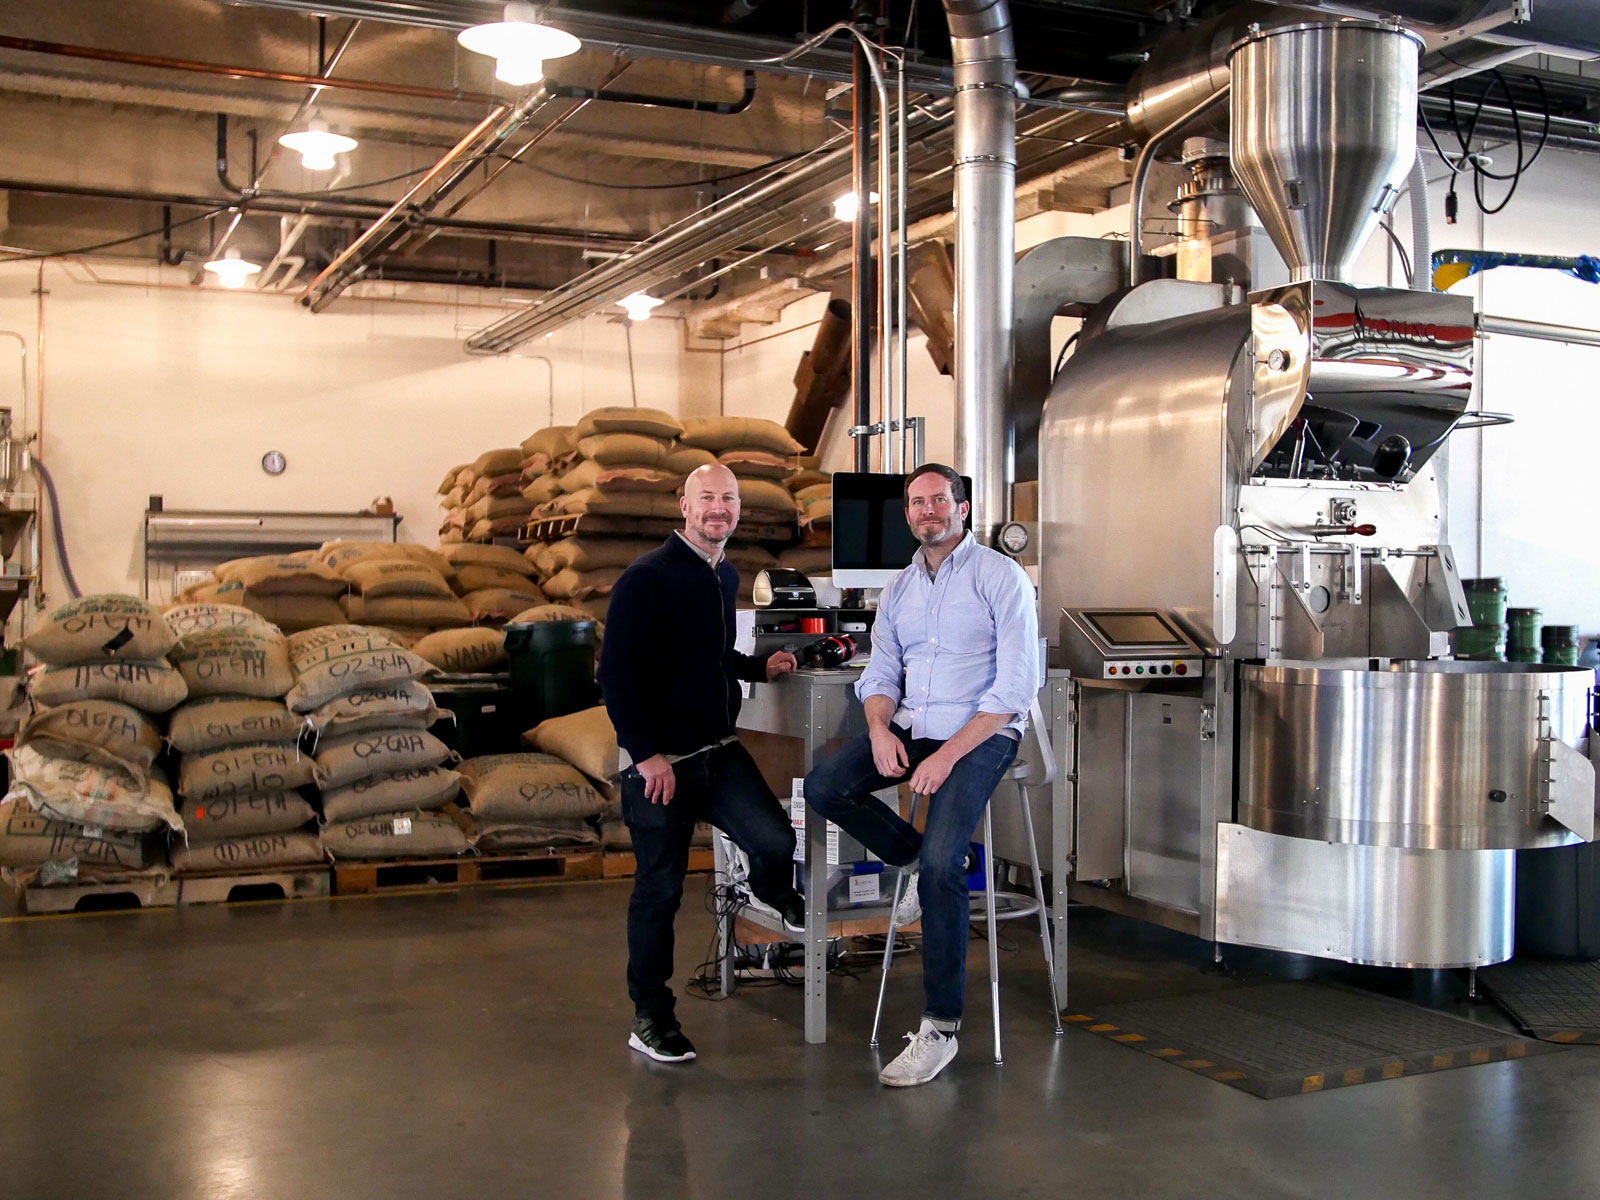 Chris Jordan and Chad Robertson founders of Coffee Manufactory